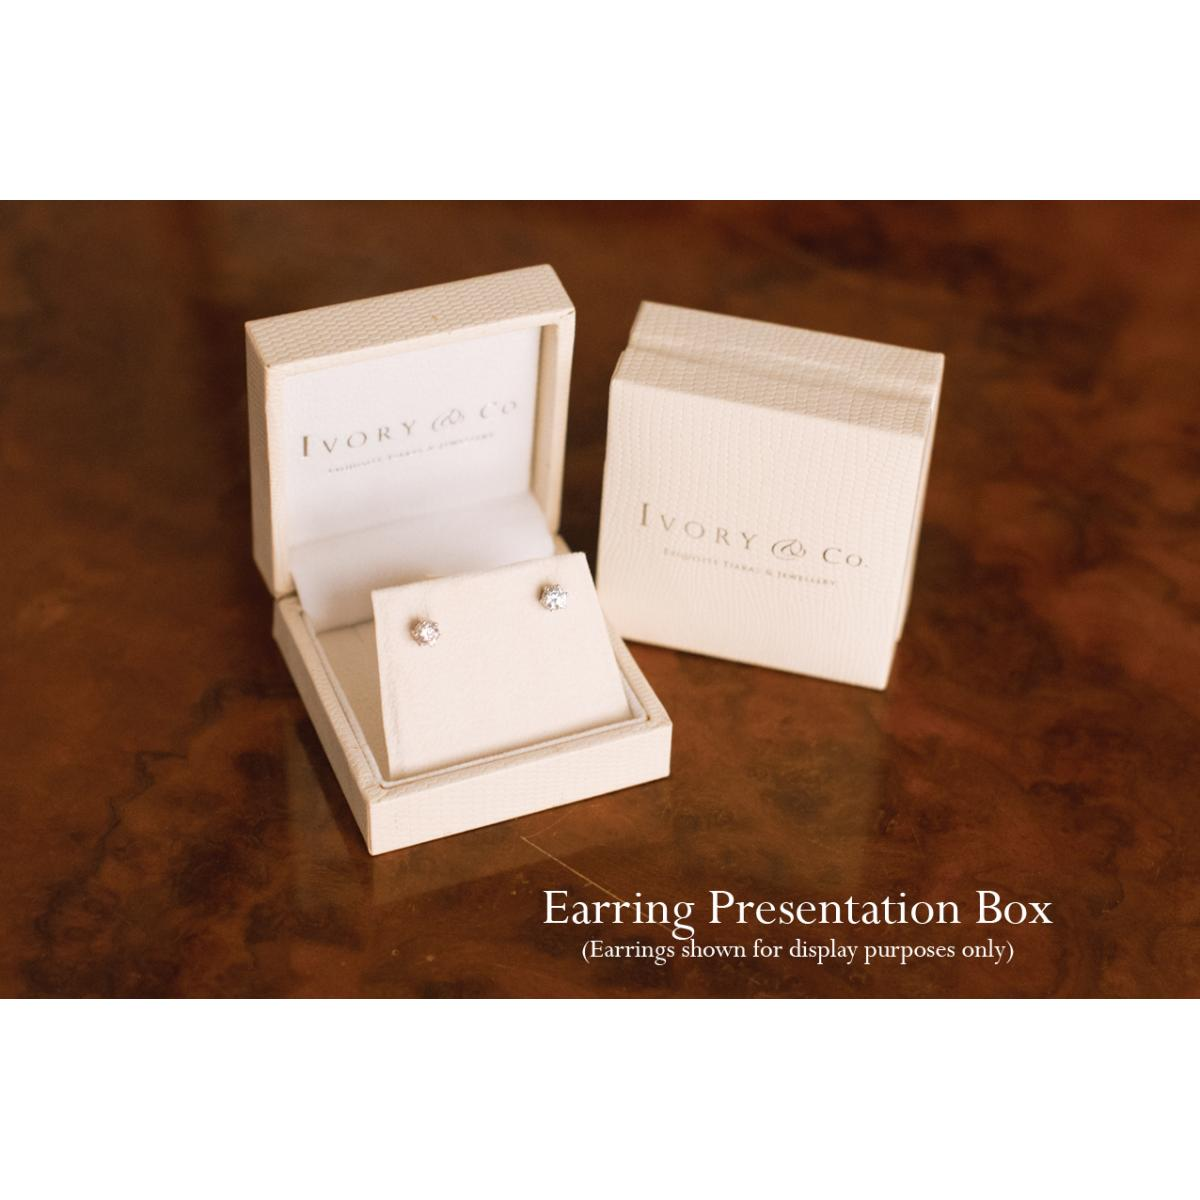 Ivory and Co Balmoral Earrings